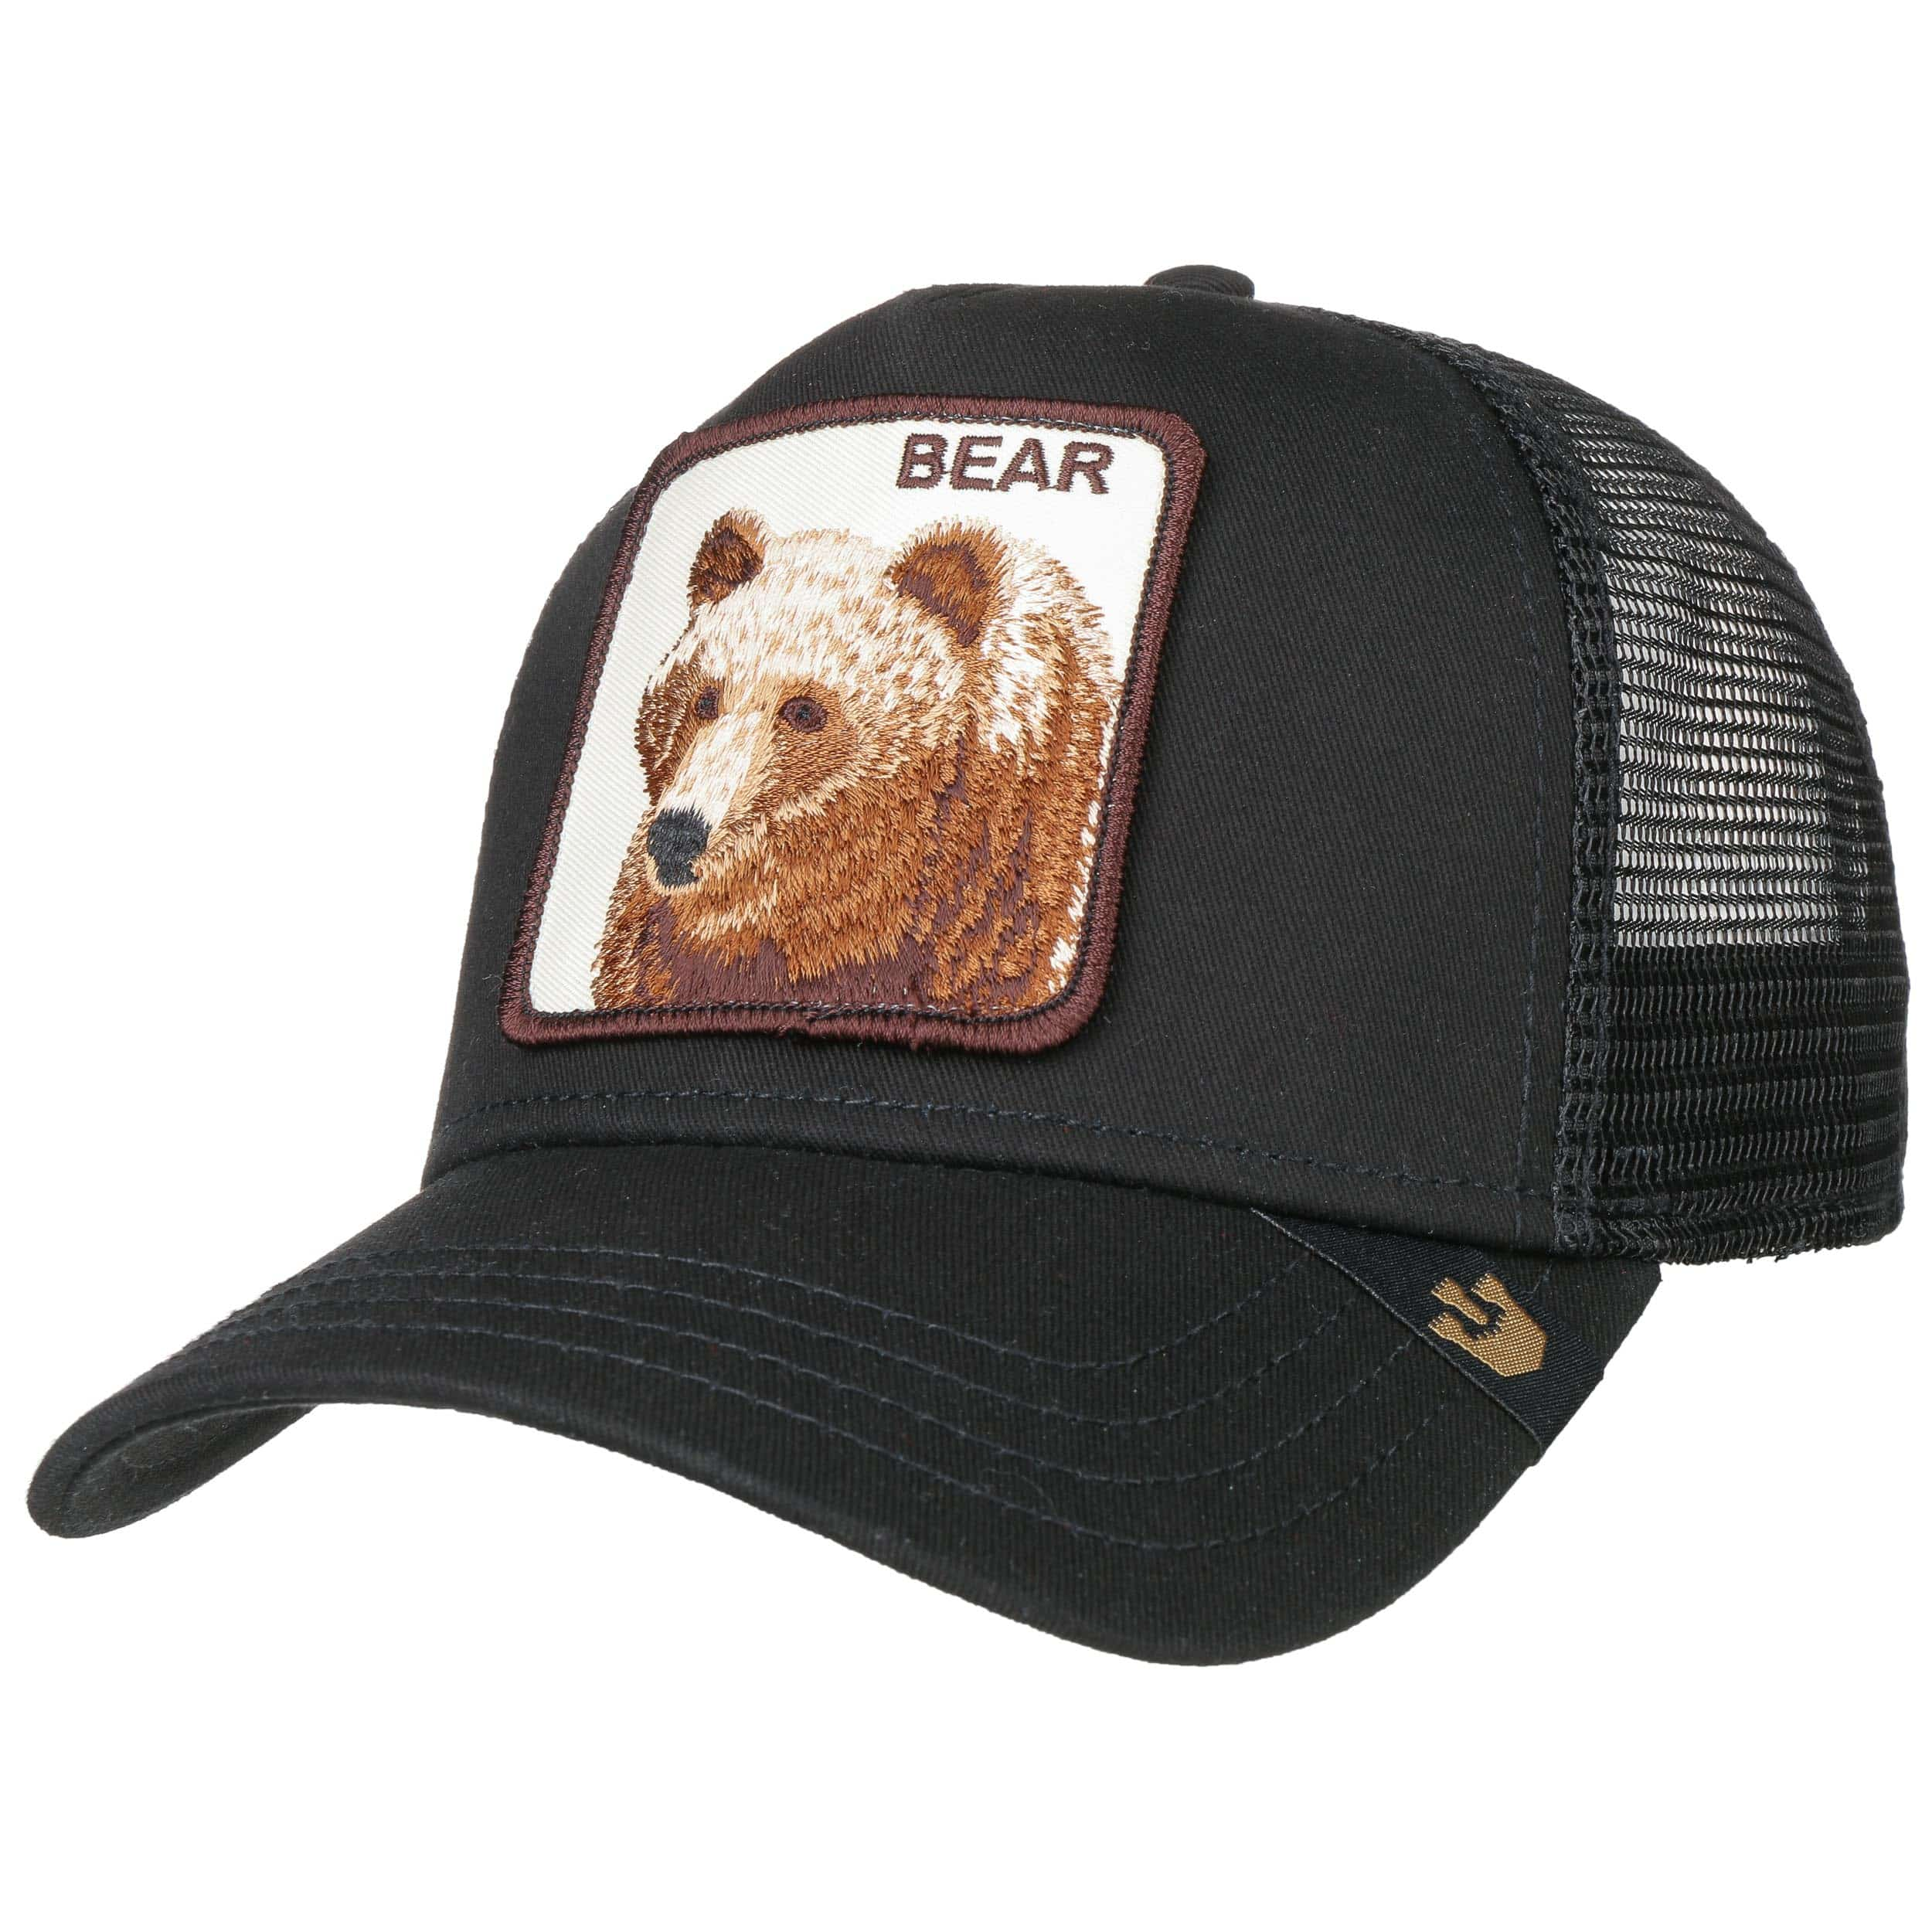 7db3e0ff black 5 · Big Bear Trucker Cap by Goorin Bros. - black 6